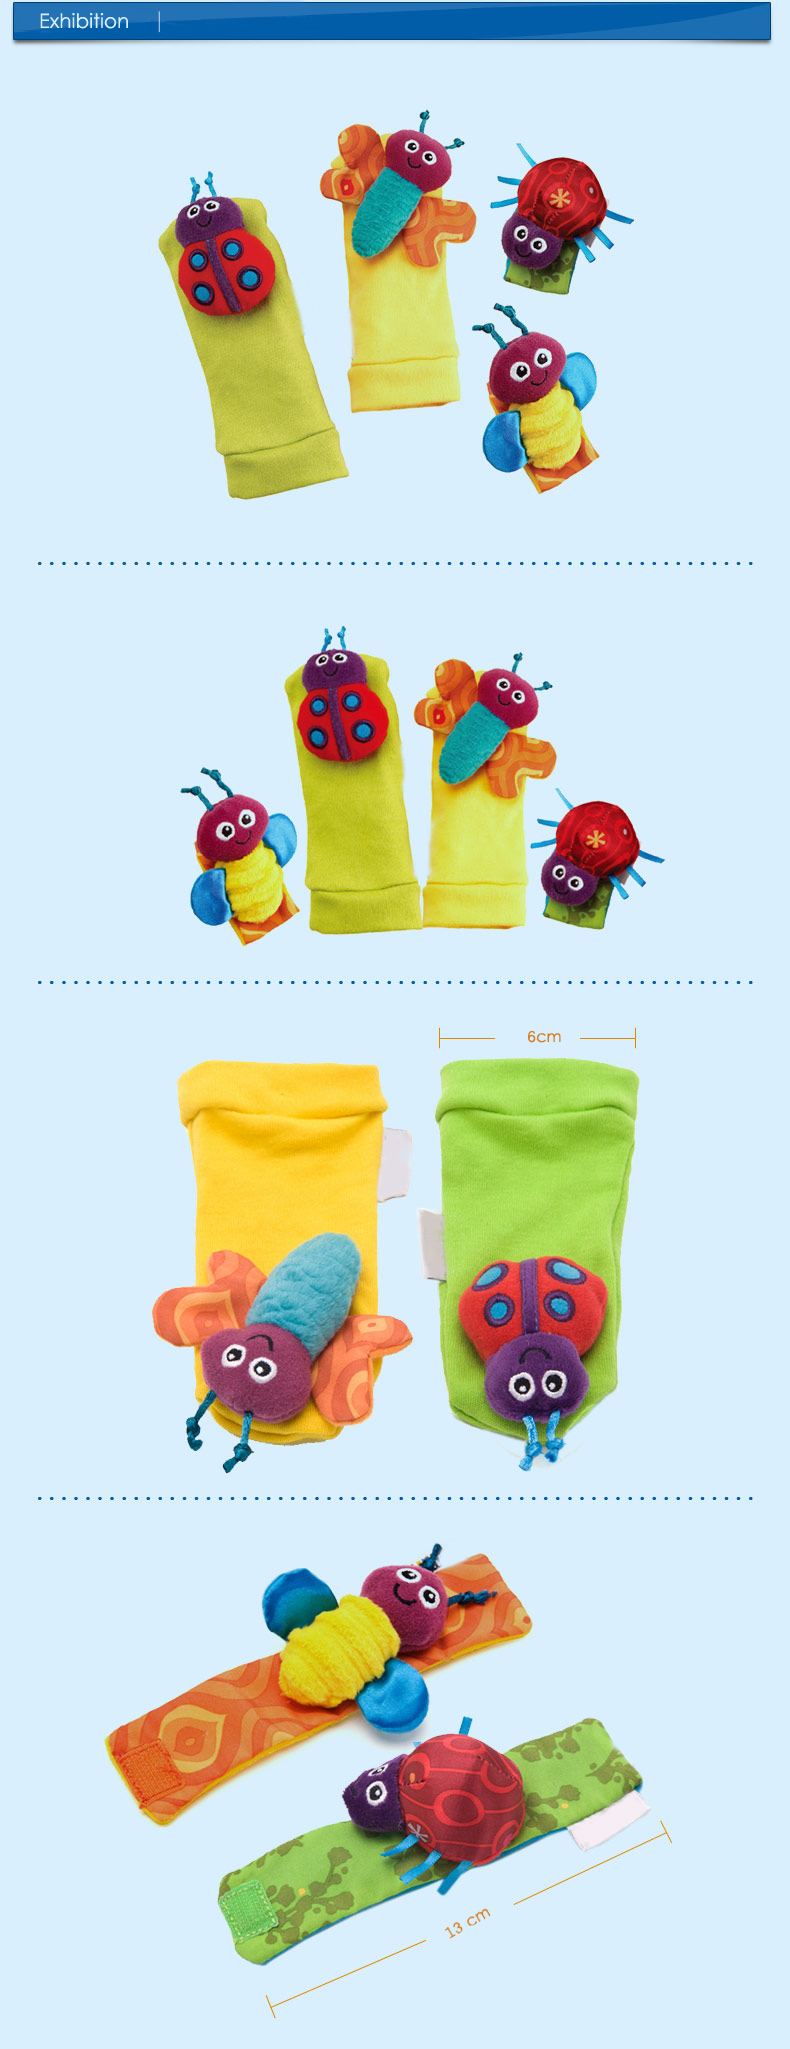 4Pcs Baby Infant Kids Cute Animals Rattles Foot Finders Toys Hand Wrist Socks Set